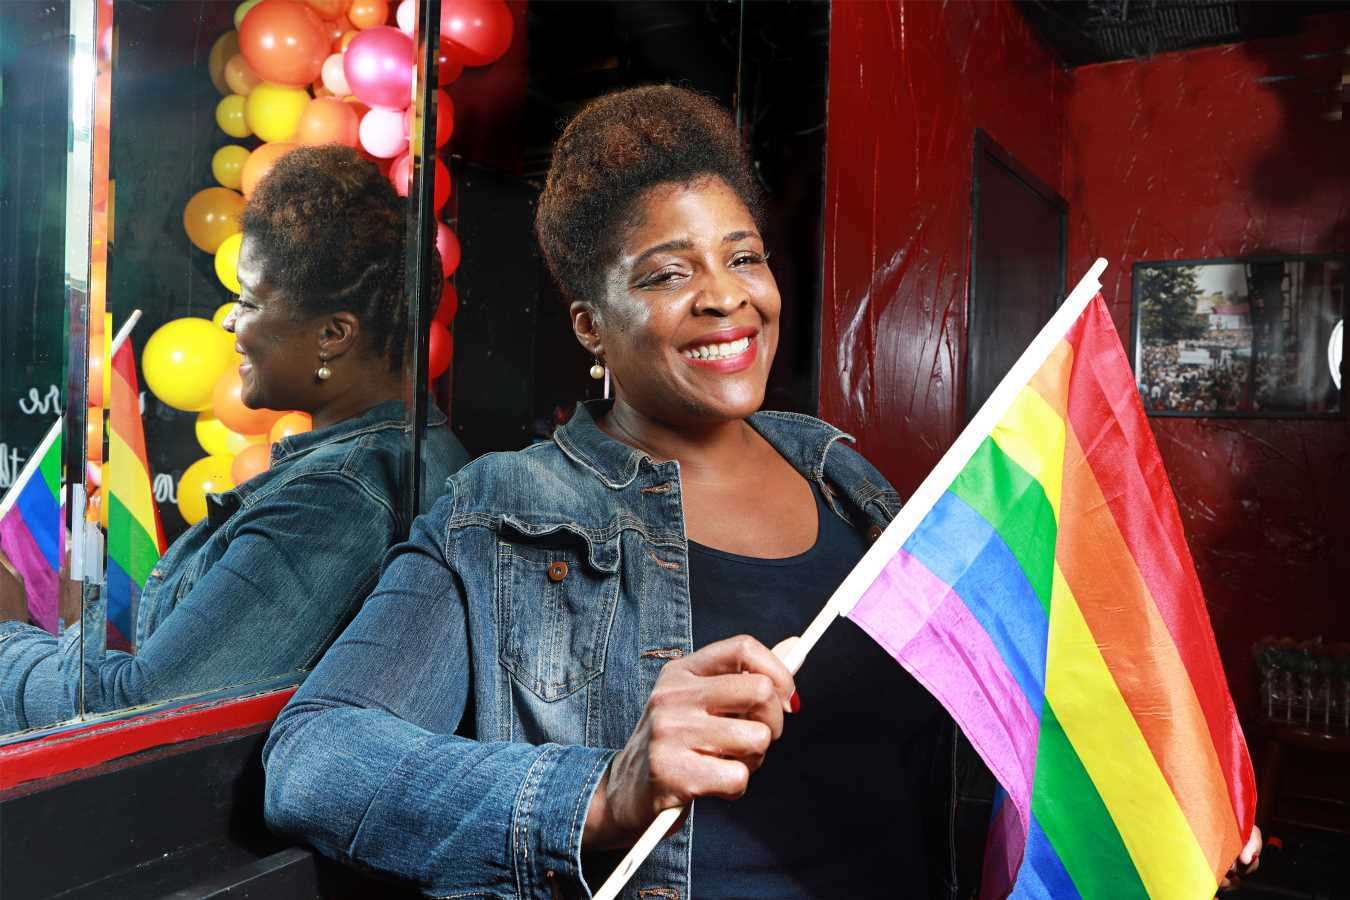 Black Lesbians Taking a Stand, Mama Dragons Fighting Homophobia & More LGBTQ Facebook Groups